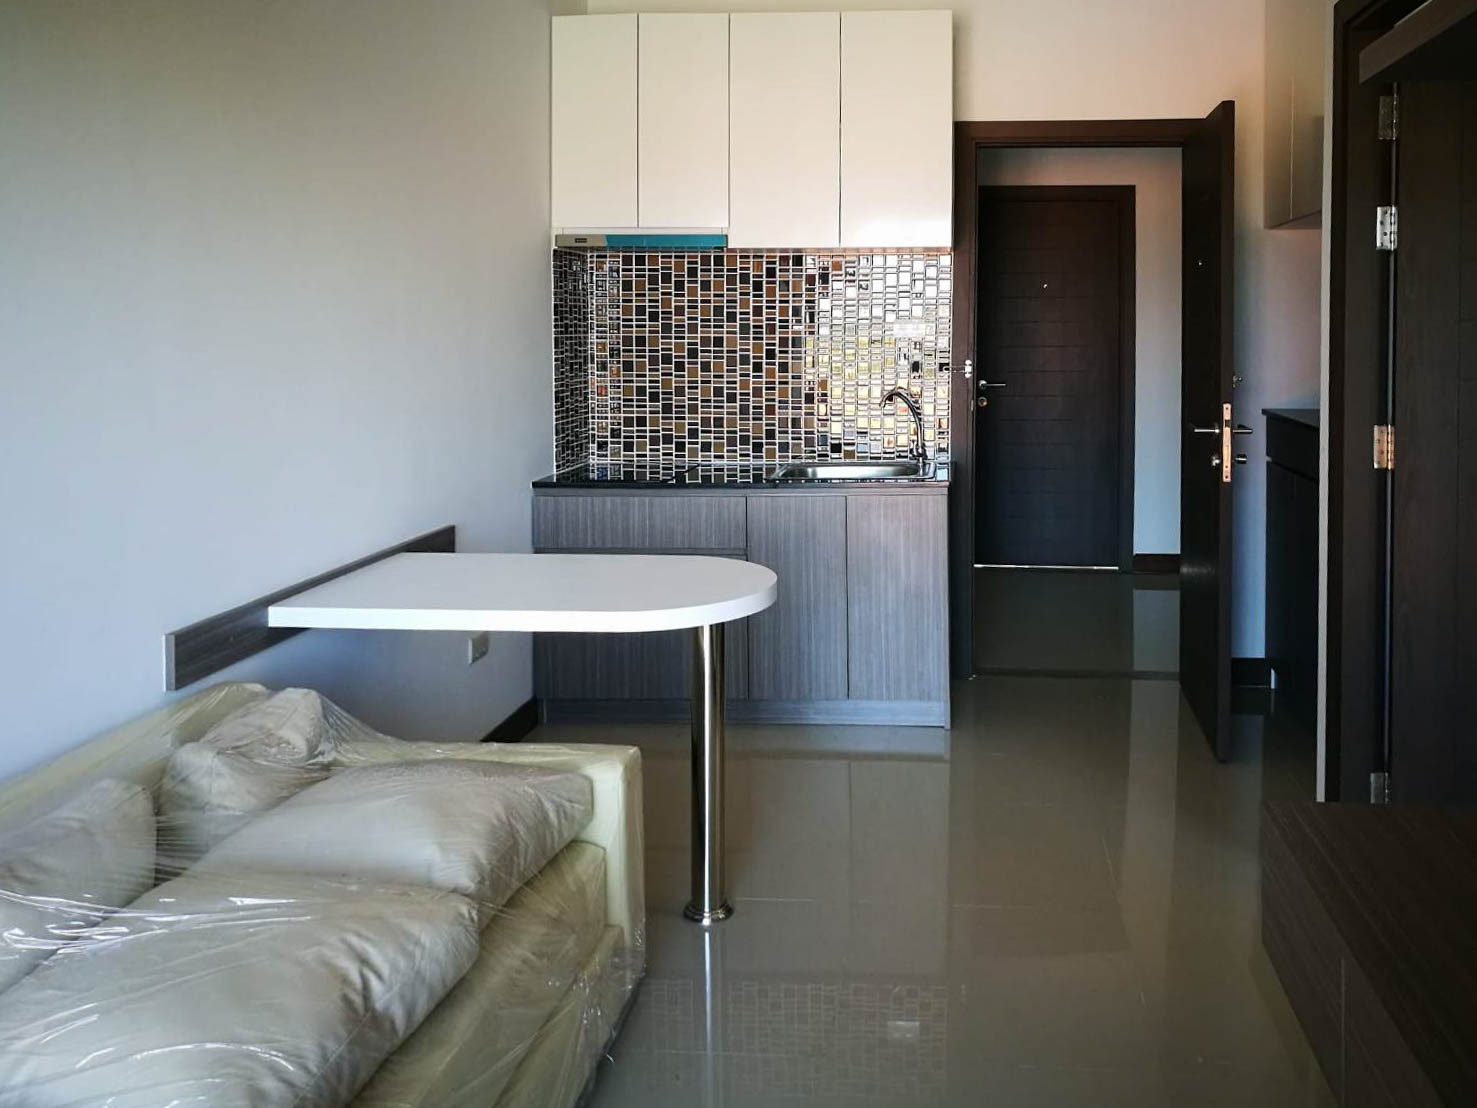 The Rich Condo Nonghoi 32 Sqm 5th Condo for Rent